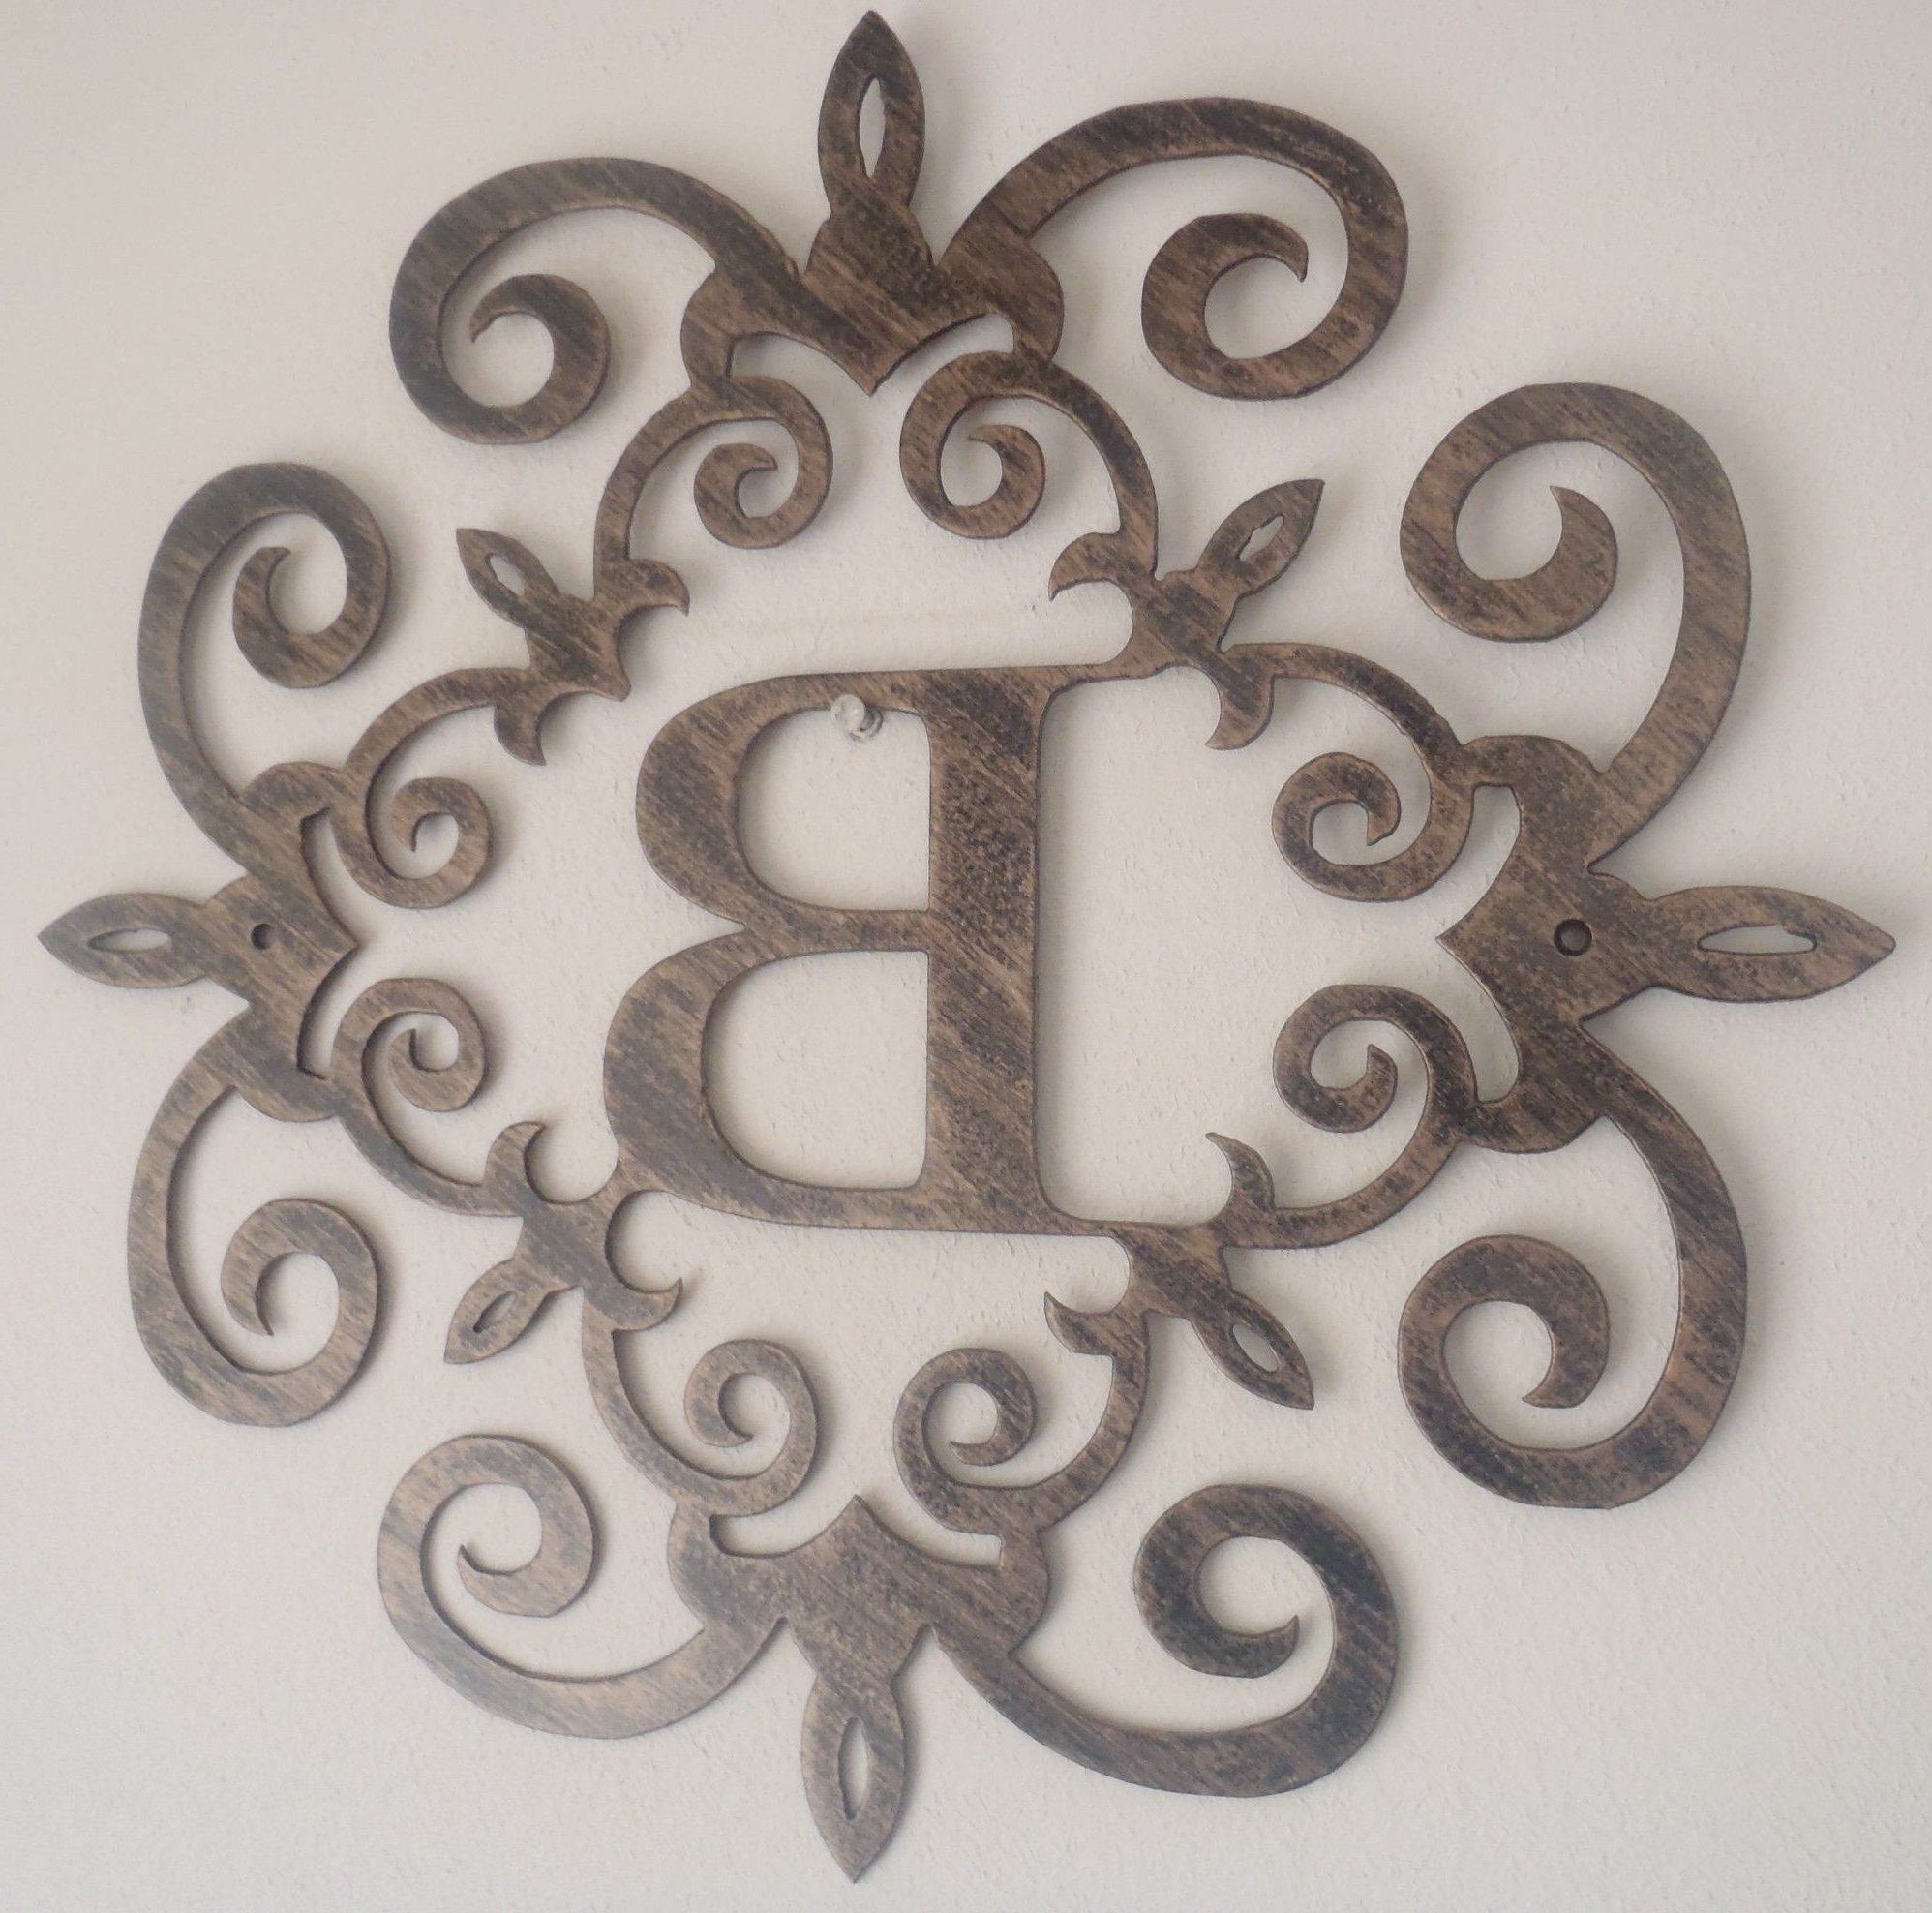 Letter Wall Art Regarding Well Known Unique Large Monogram Letters Wall Decor (View 8 of 15)